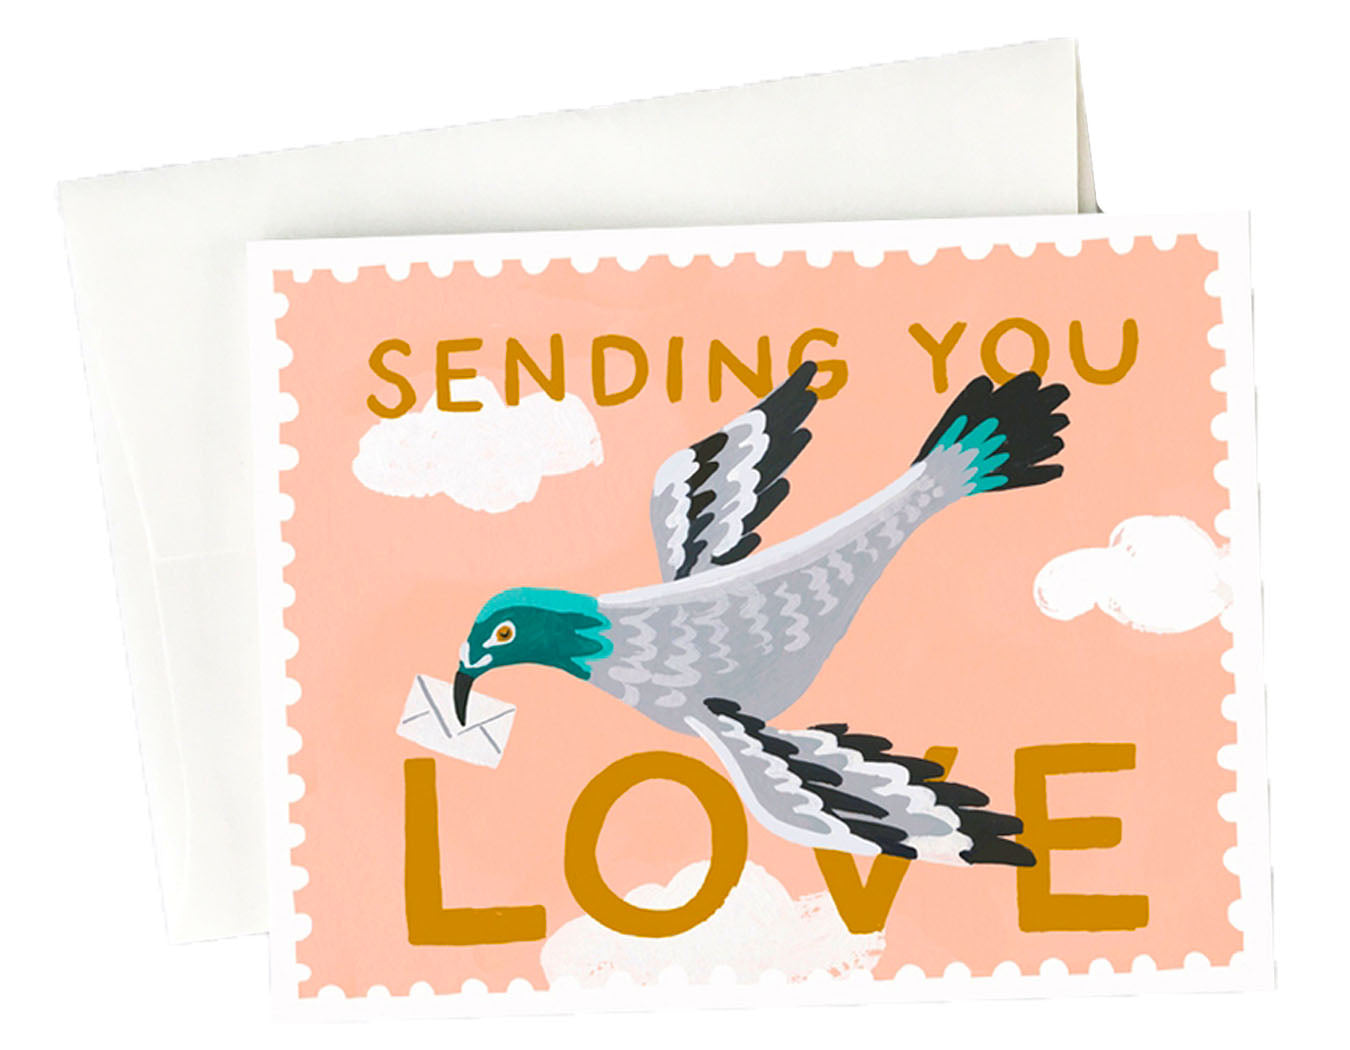 postage stamp border, pink background with pigeon holding envelope in beak. text reads sending you love